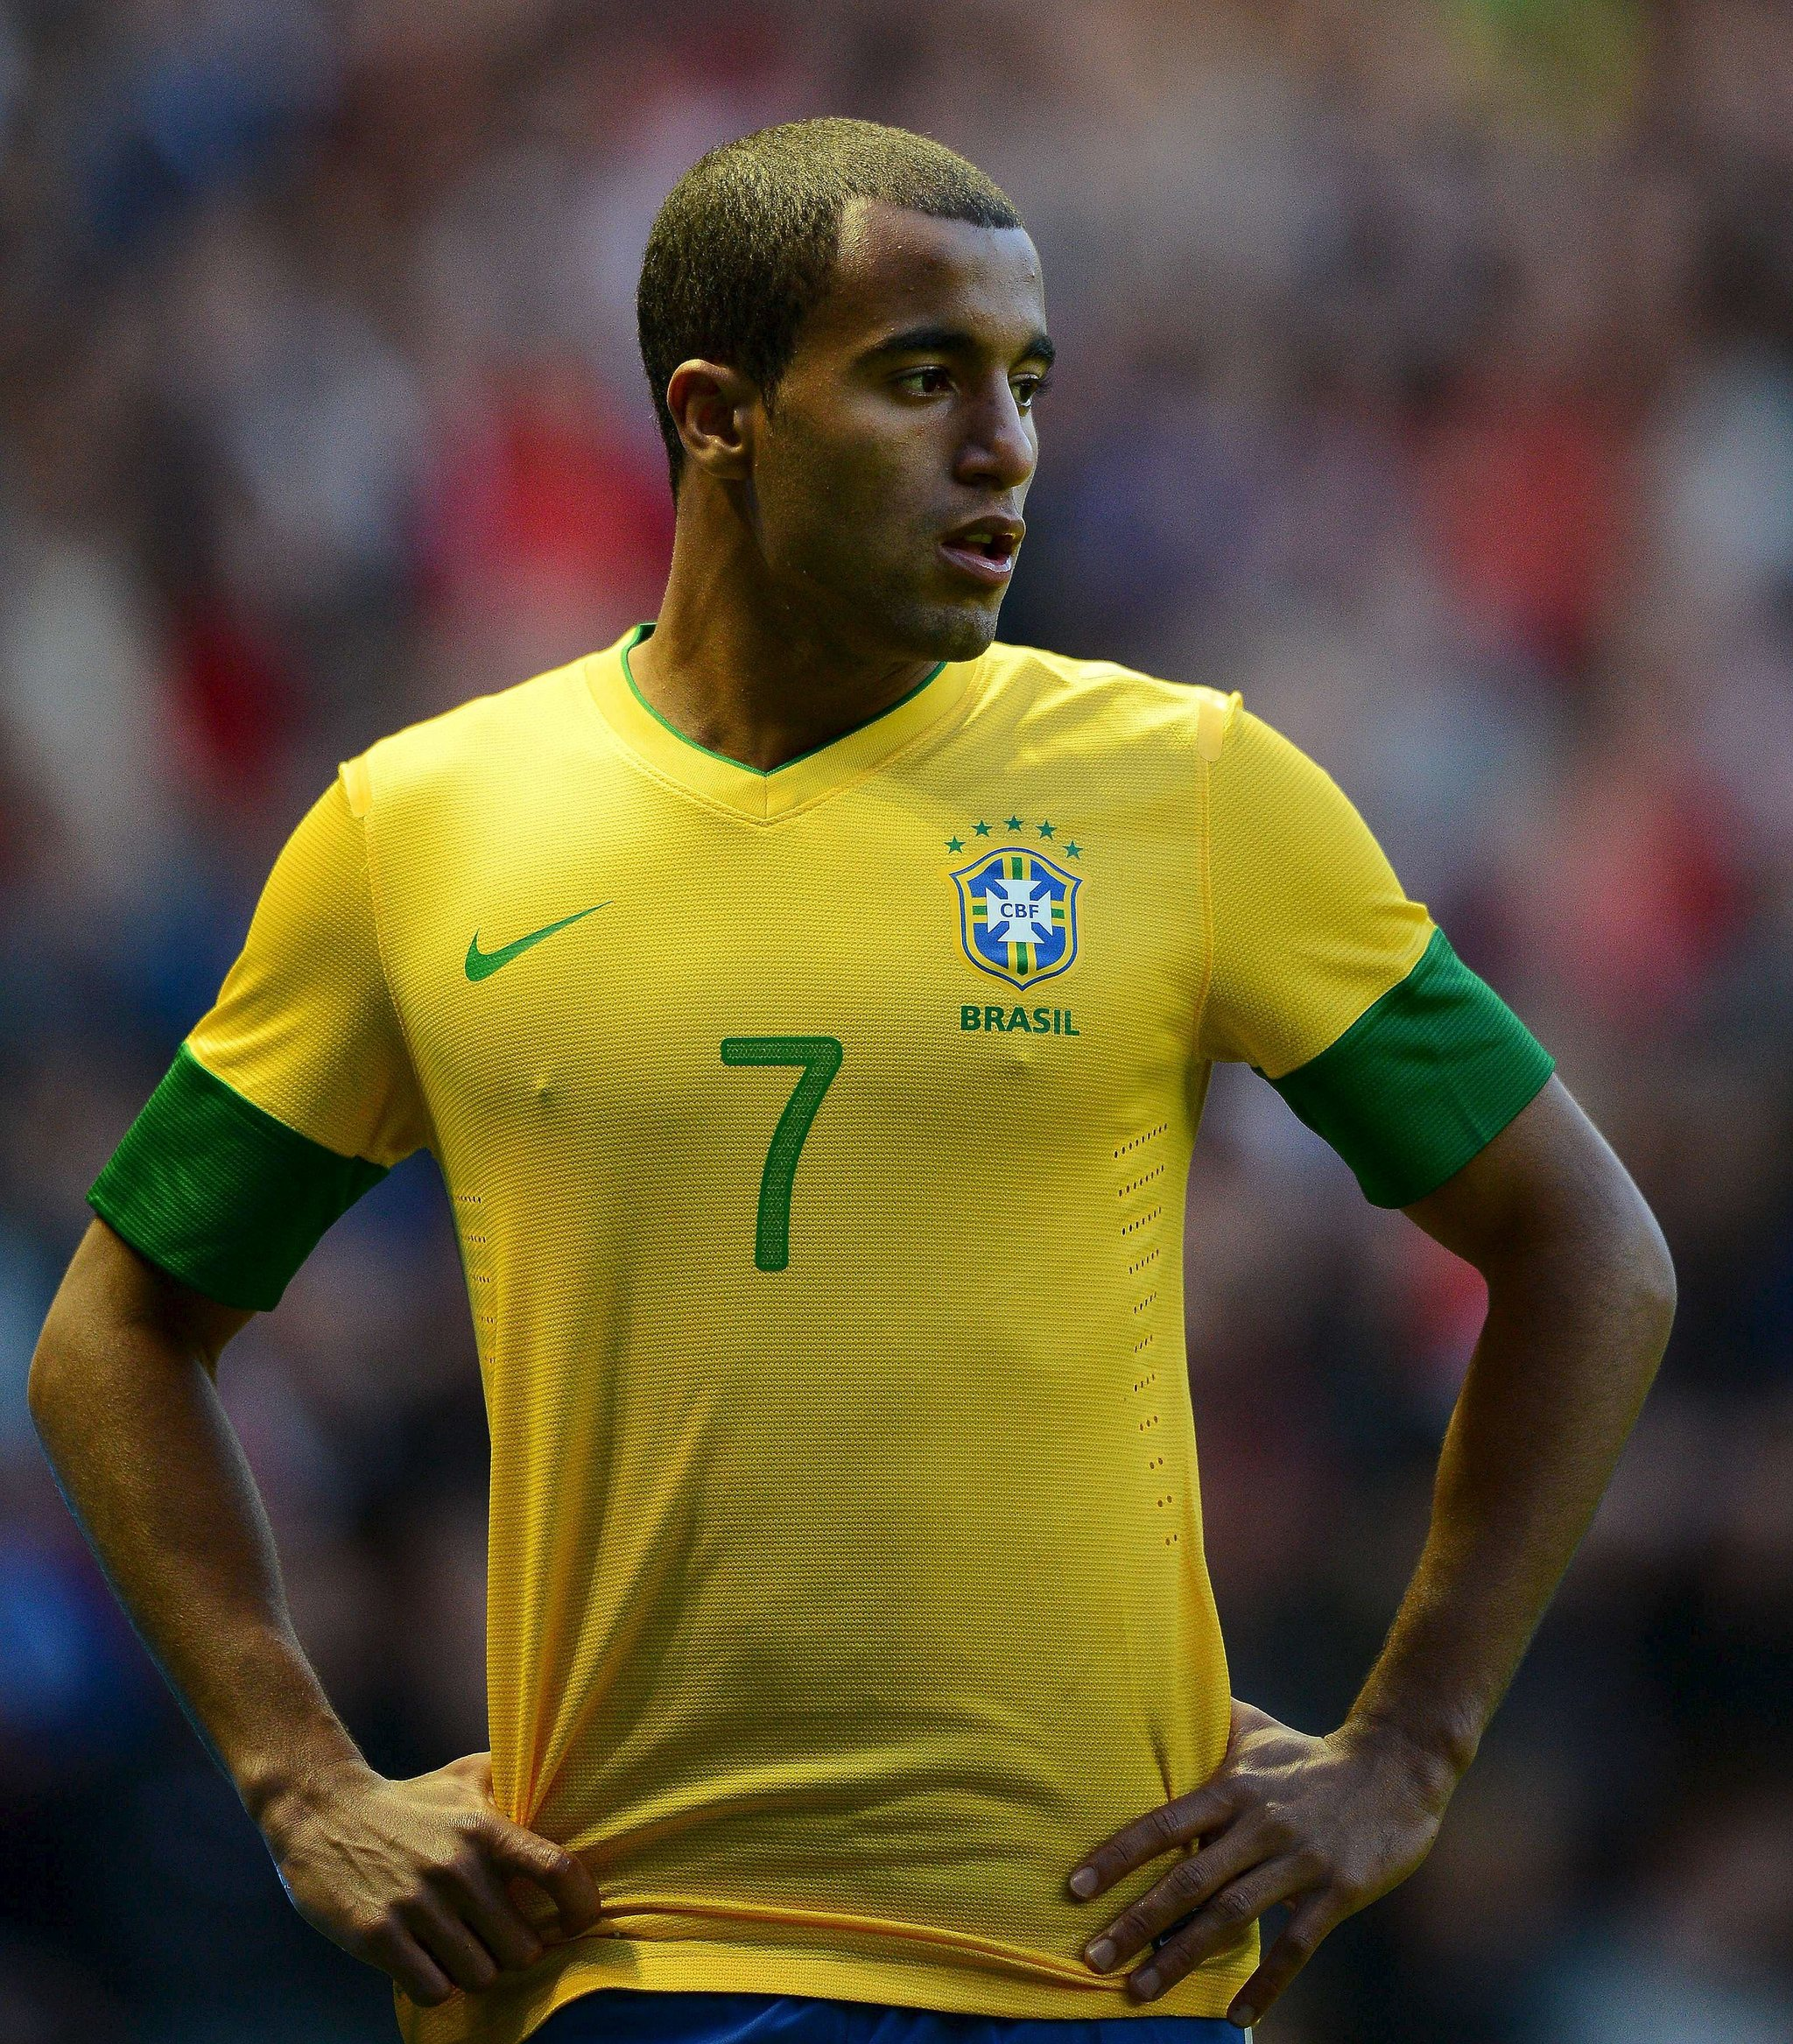 Lucas Moura To Psg Price: Transfer Market: Real Madrid's 570m Euros For